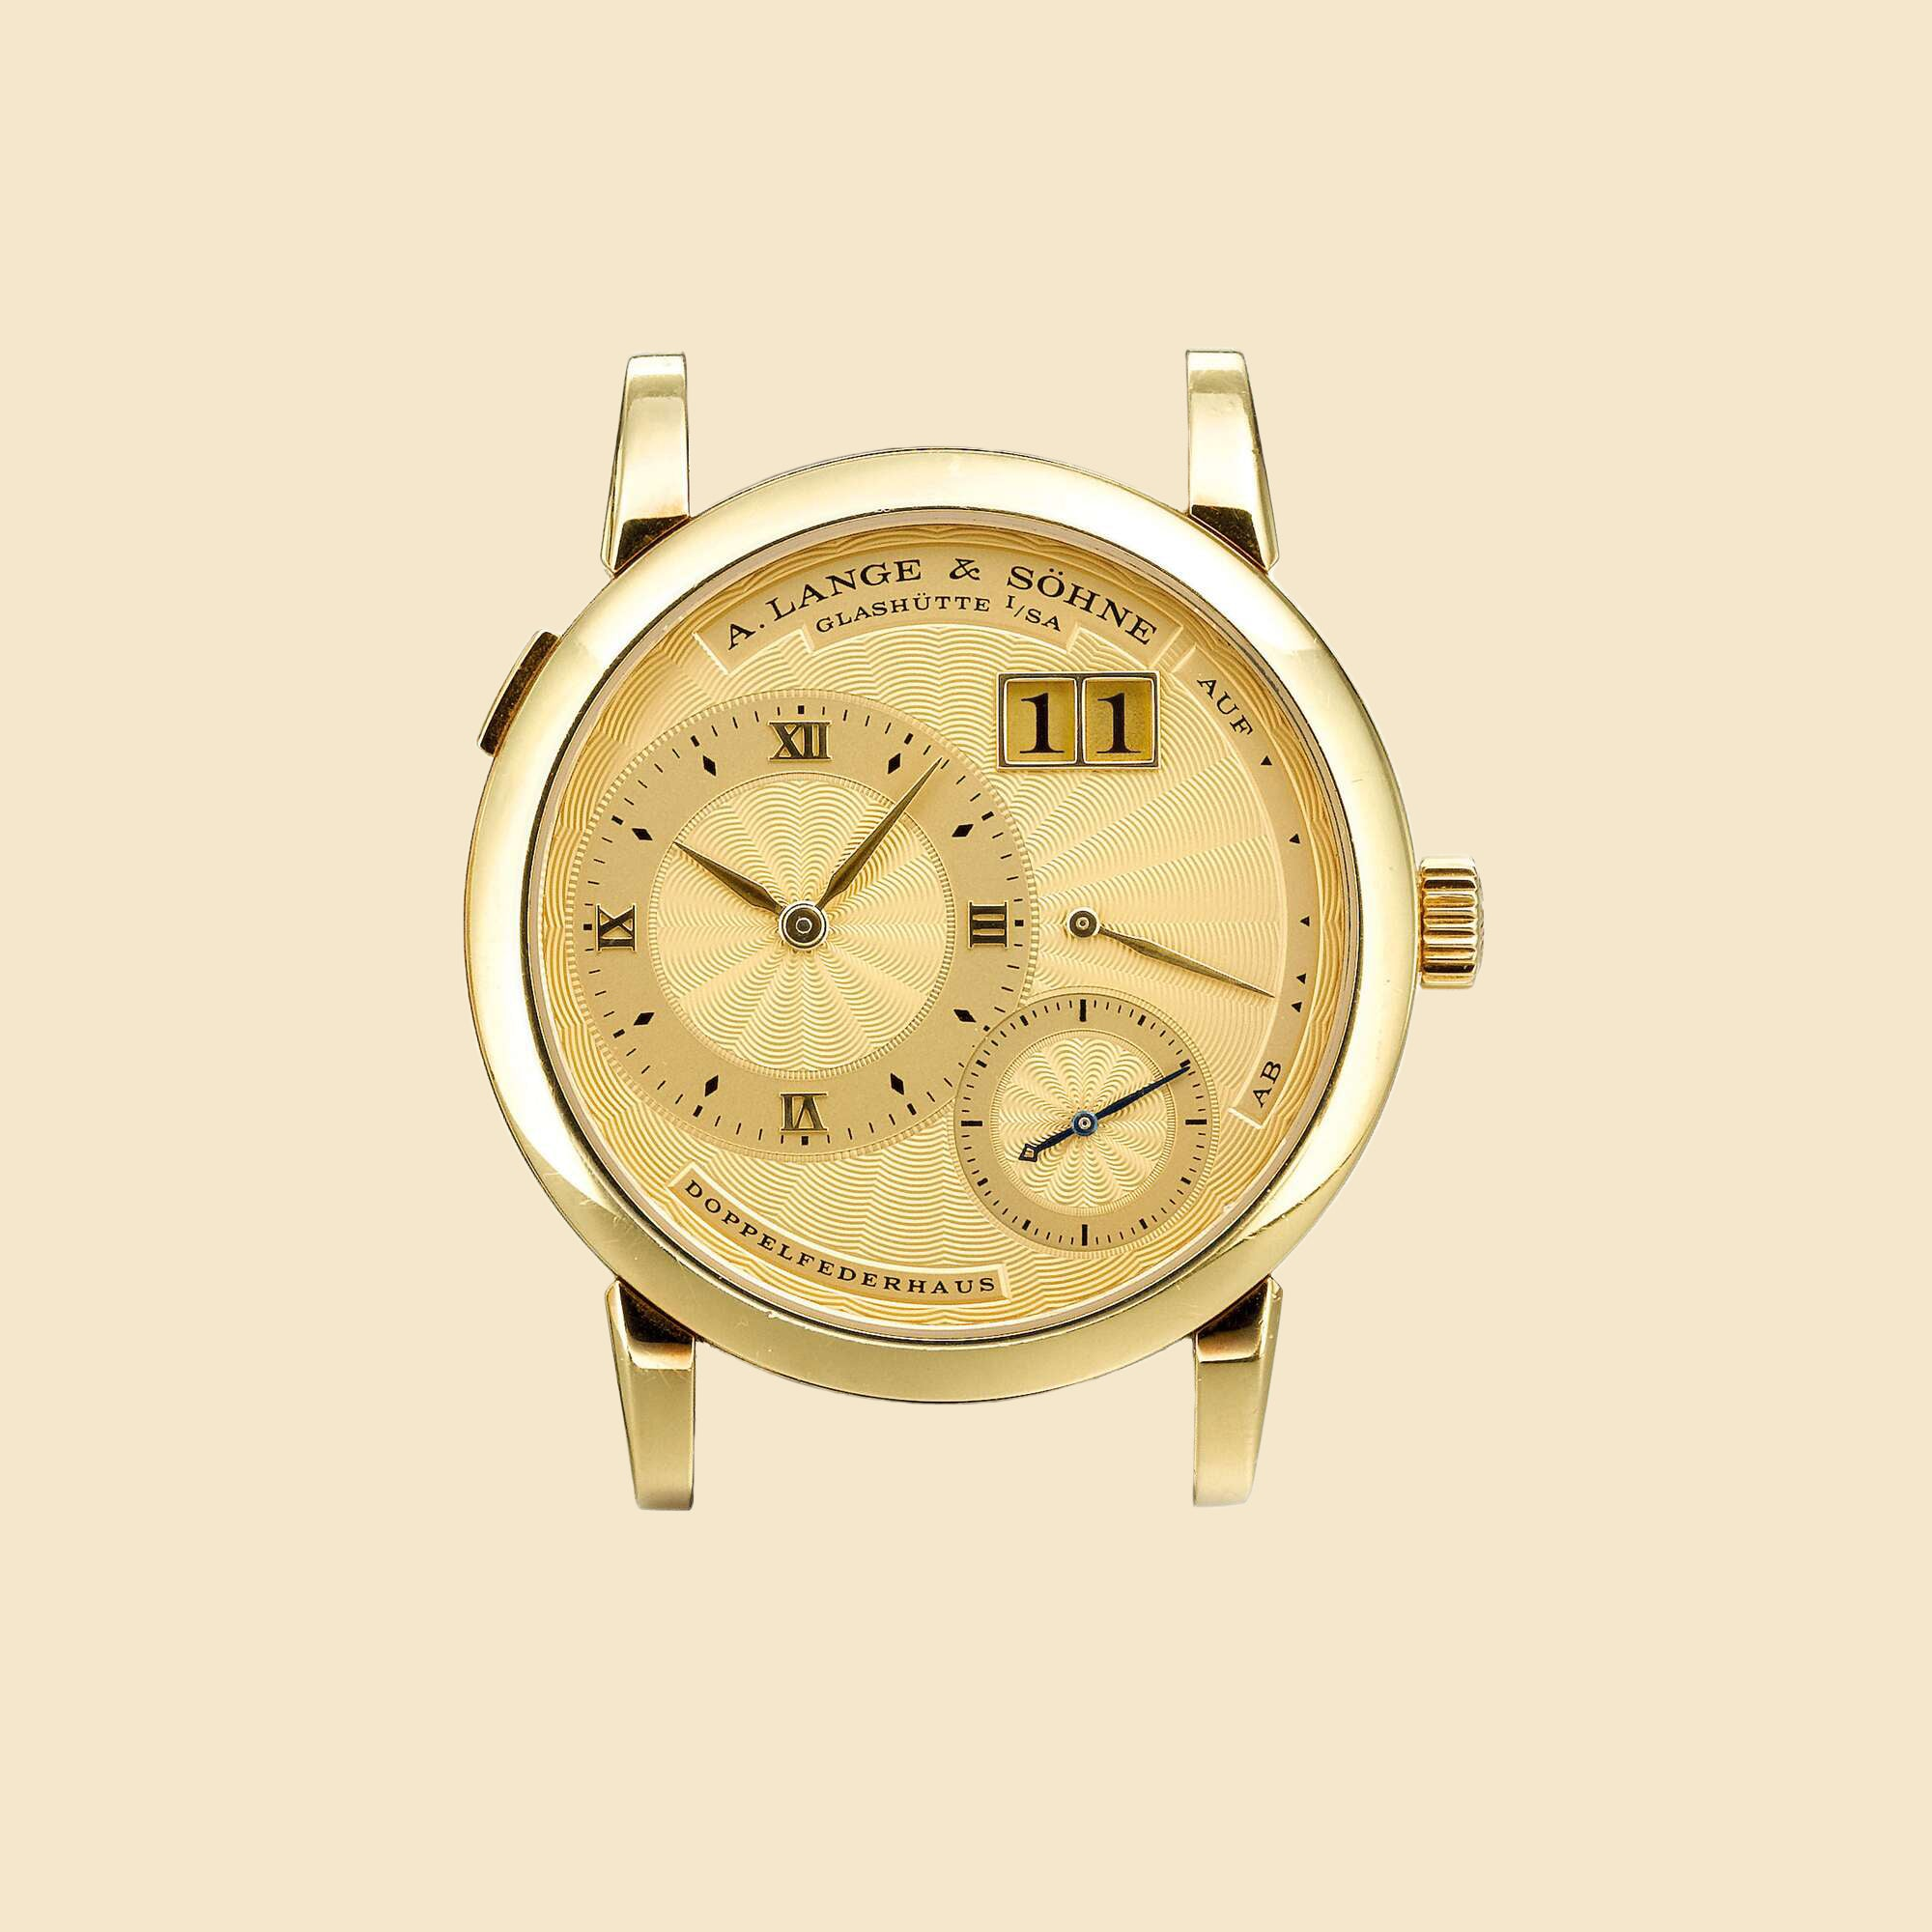 A. Lange & Söhne Lange 1A limited edition with gold engine turned dial for A Collected Man London